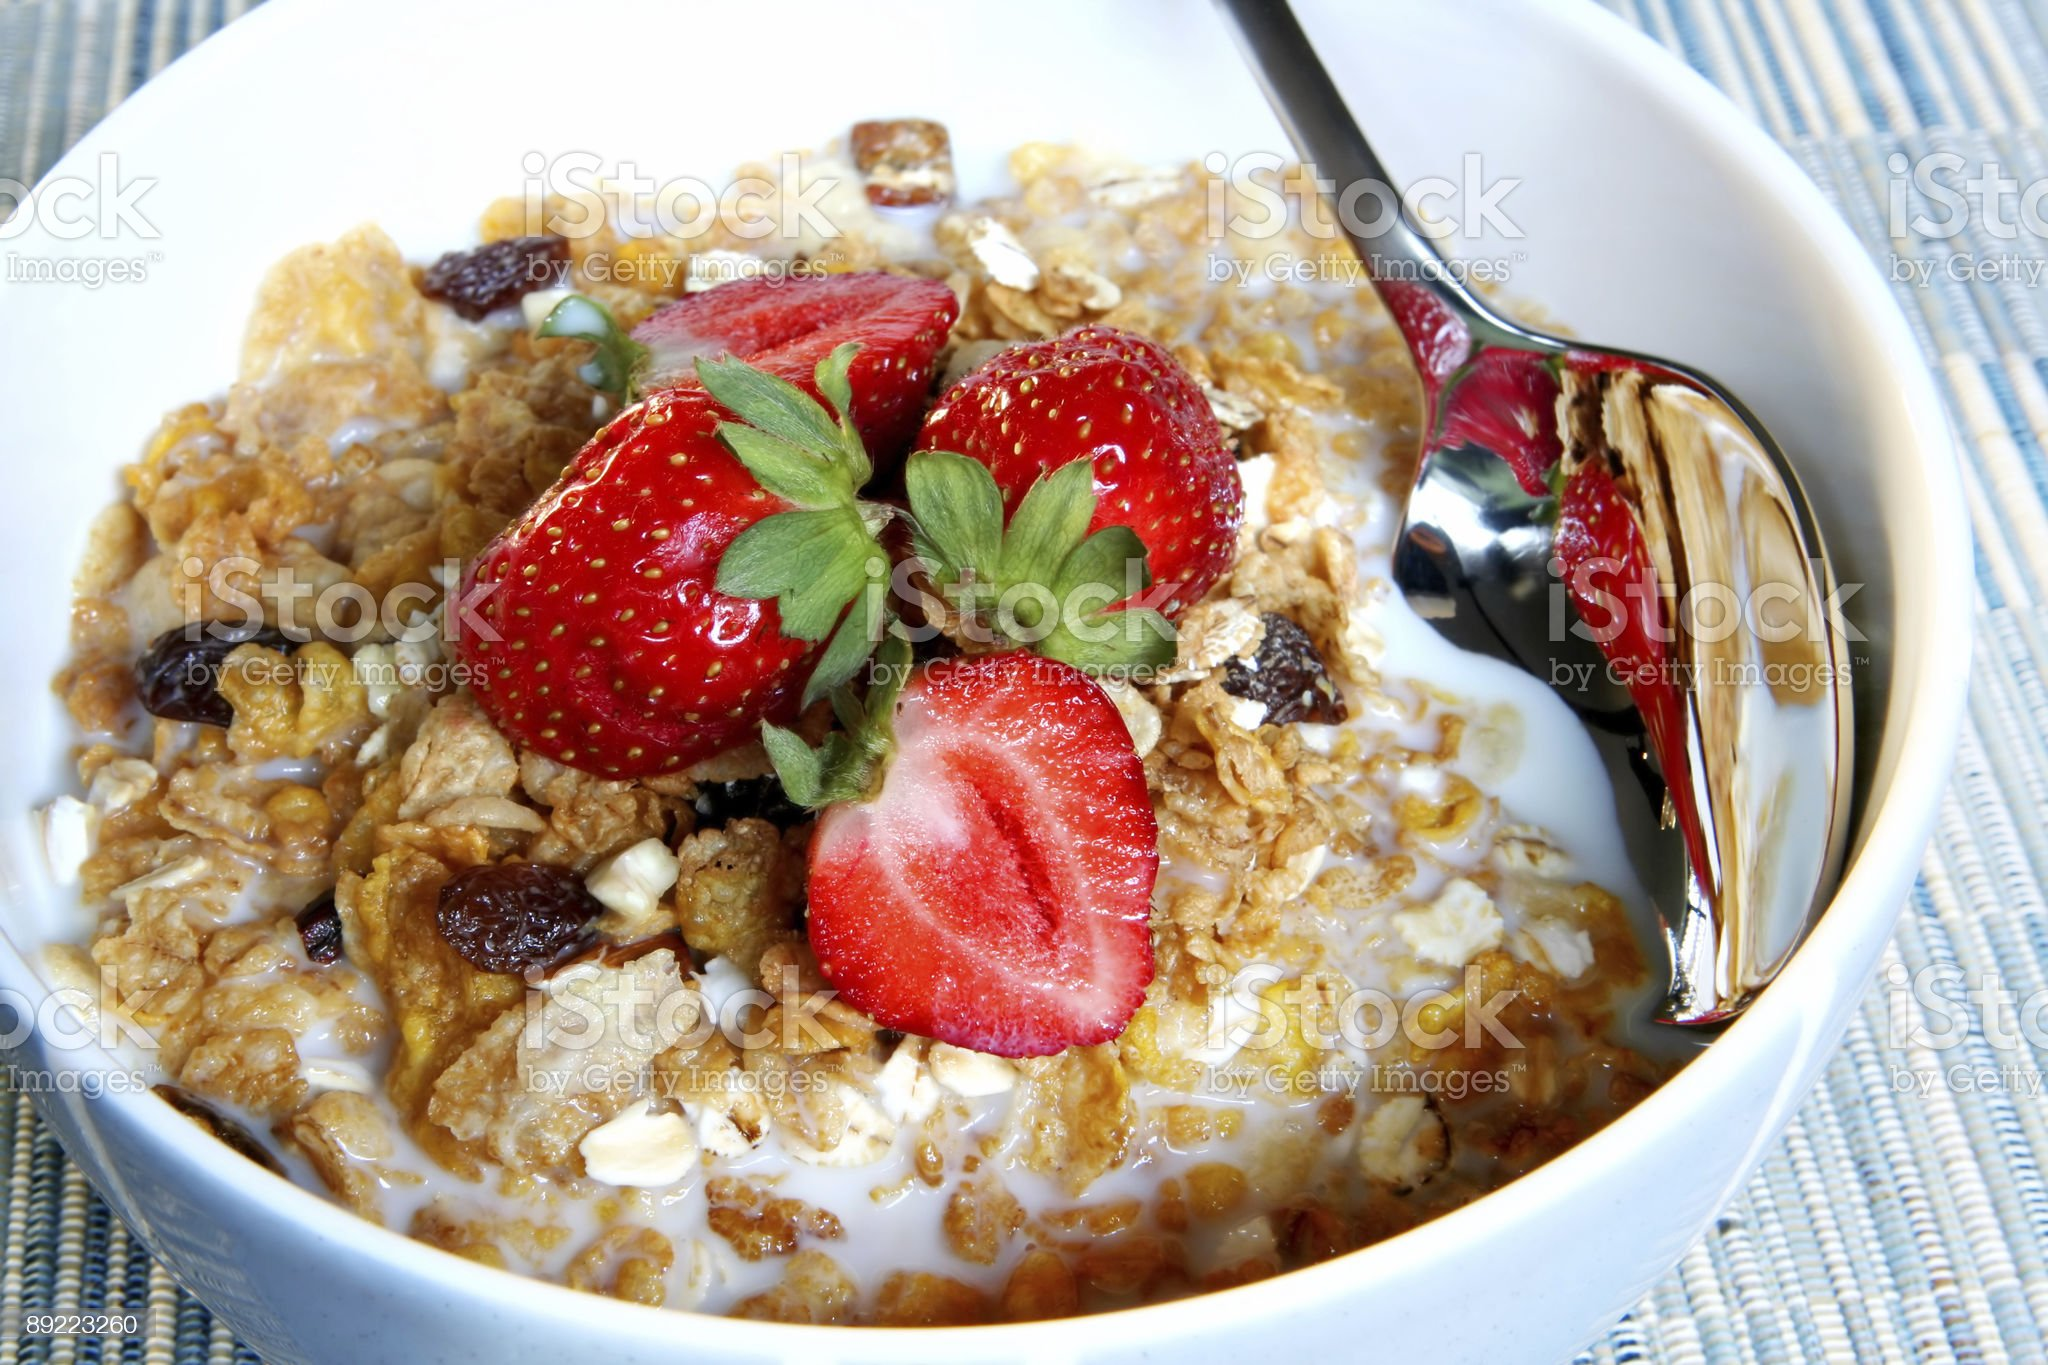 Breakfast Cereal with Strawberries royalty-free stock photo